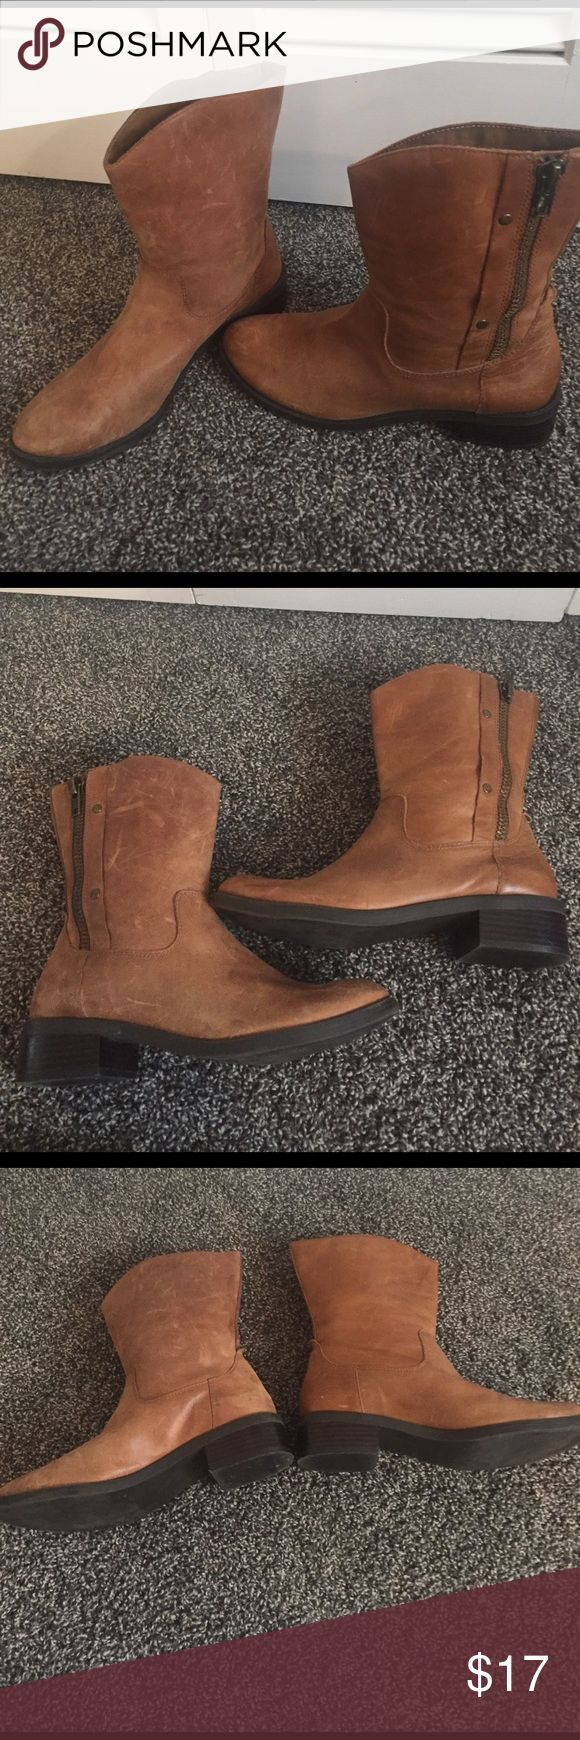 Jessica Simpson Boots Jessica Simpson Boots. Used condition. Side zipper does not unzip-for looks only Jessica Simpson Shoes Ankle Boots & Booties